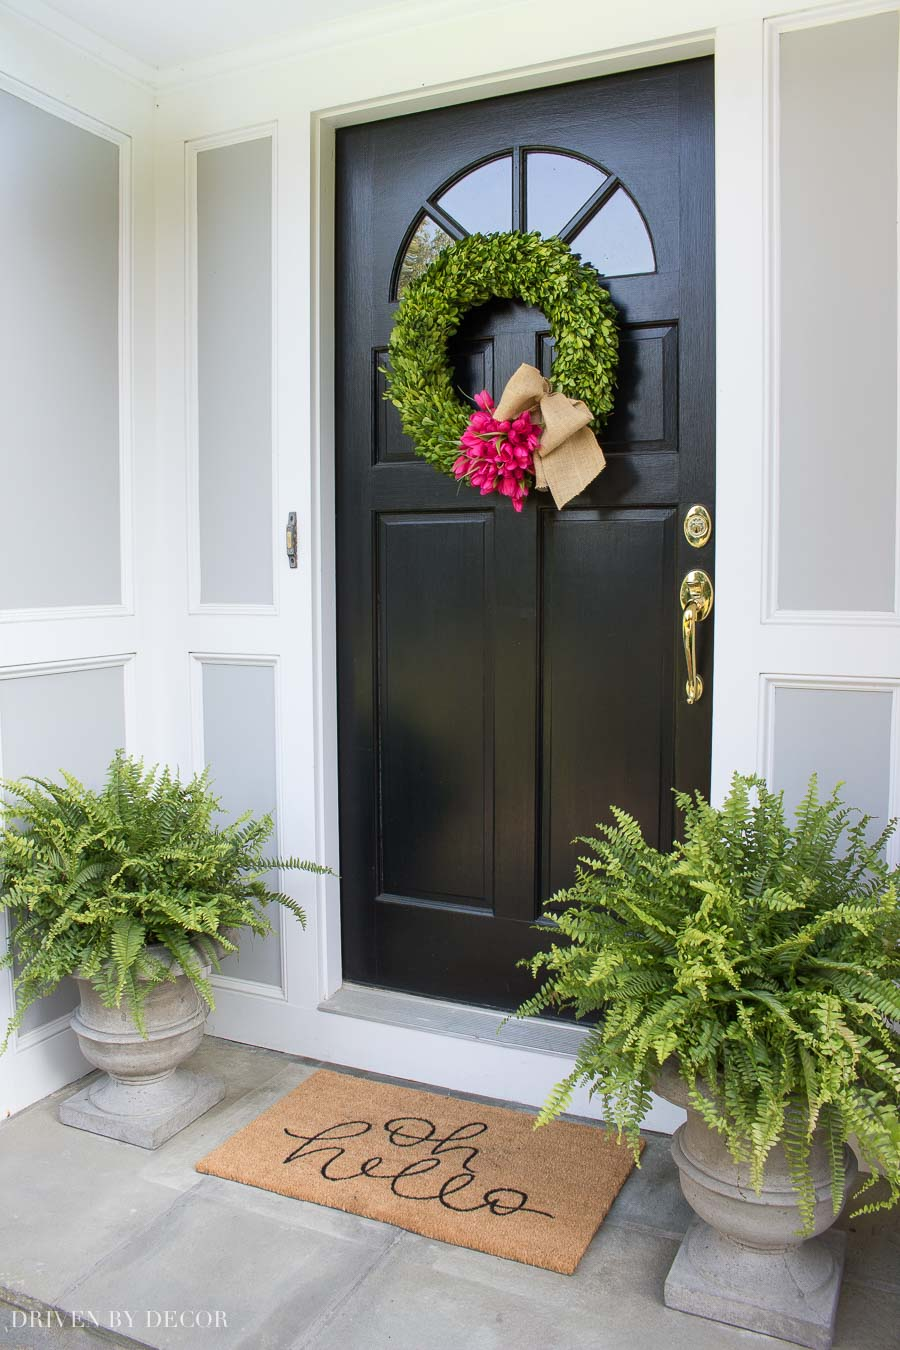 Loving the simple spring door decorations of a boxwood wreath with tulips and planters with Boston ferns!